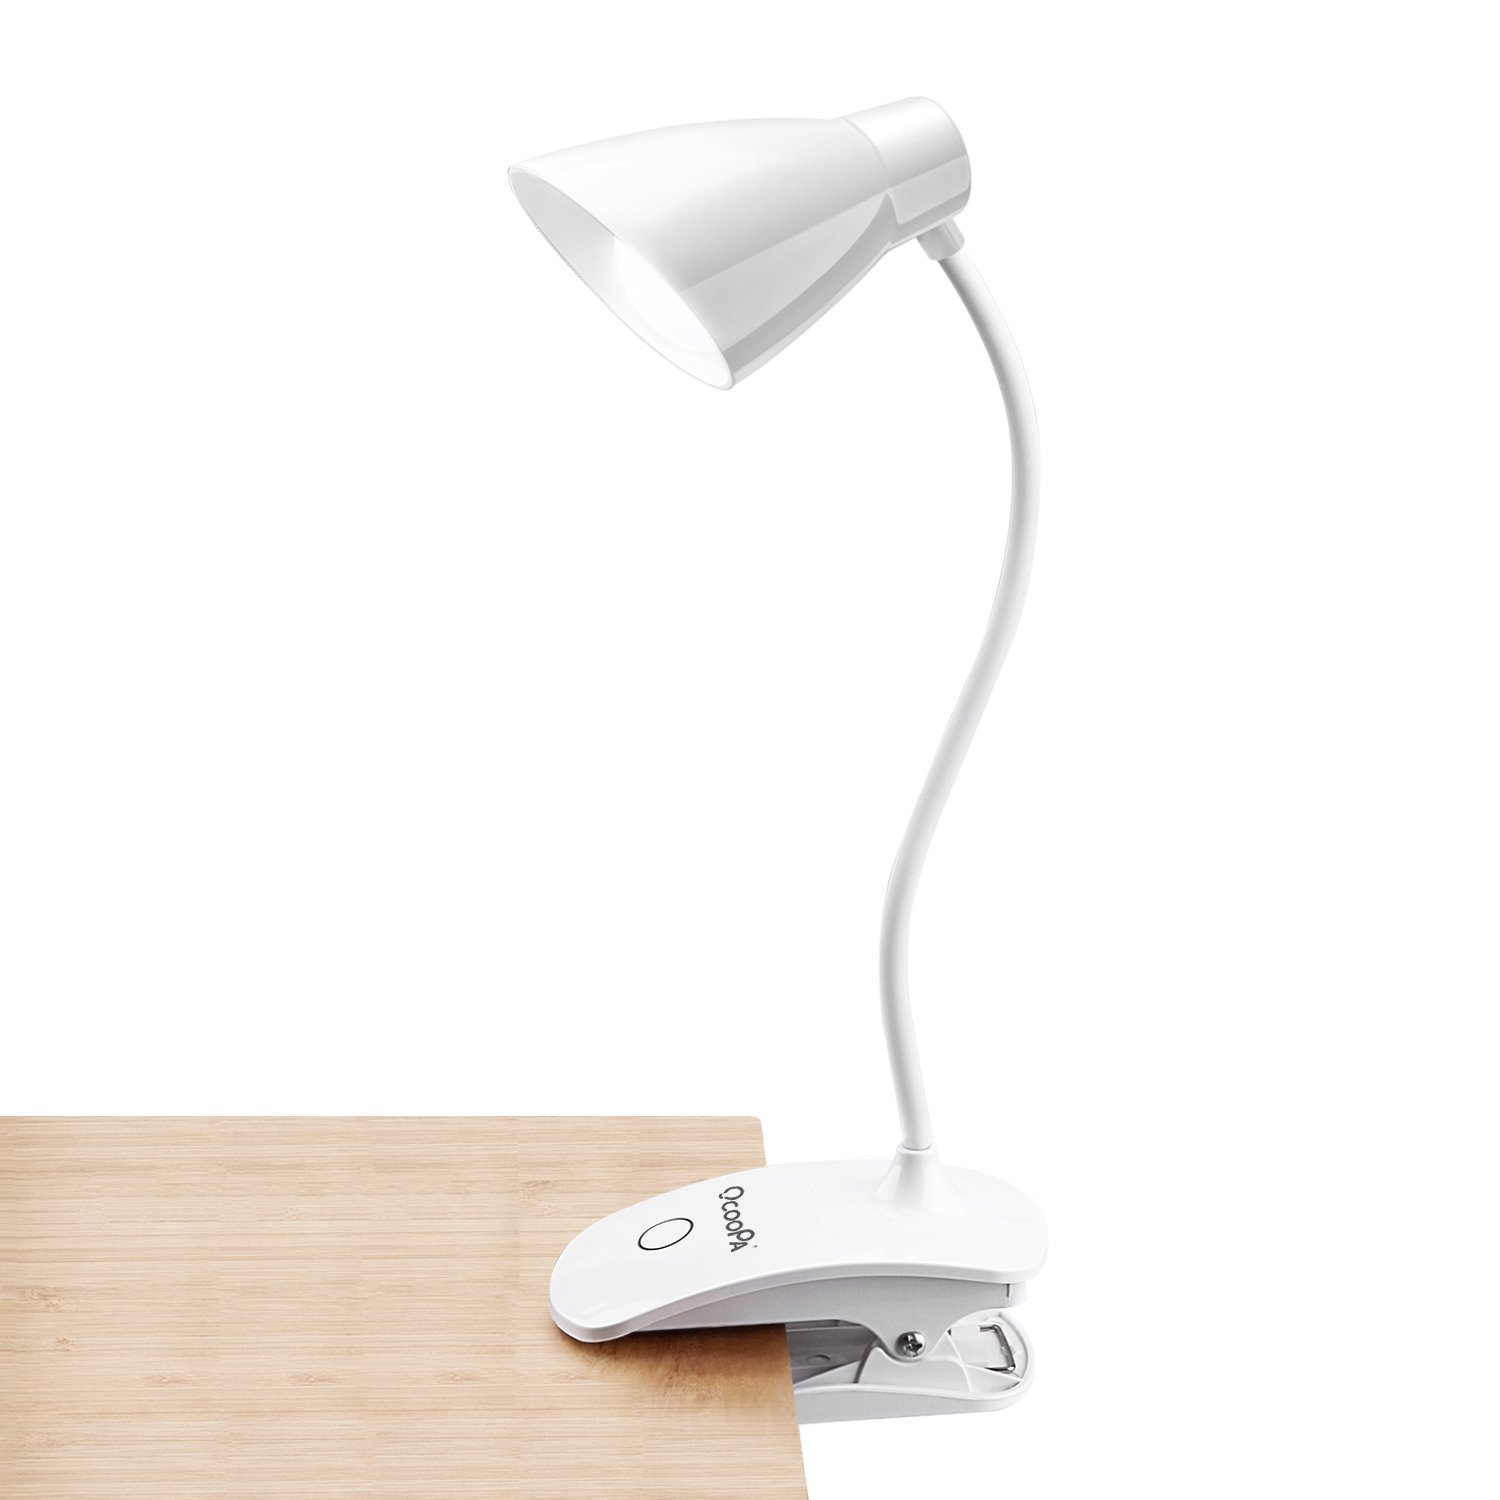 LED Clip on Light, OCOOPA Battery Operated Reading Lamp, USB Rechargeable Book Light, Dimmable Touch Bedside Lamp, Portable Desk Lamp with Good Eye Protection